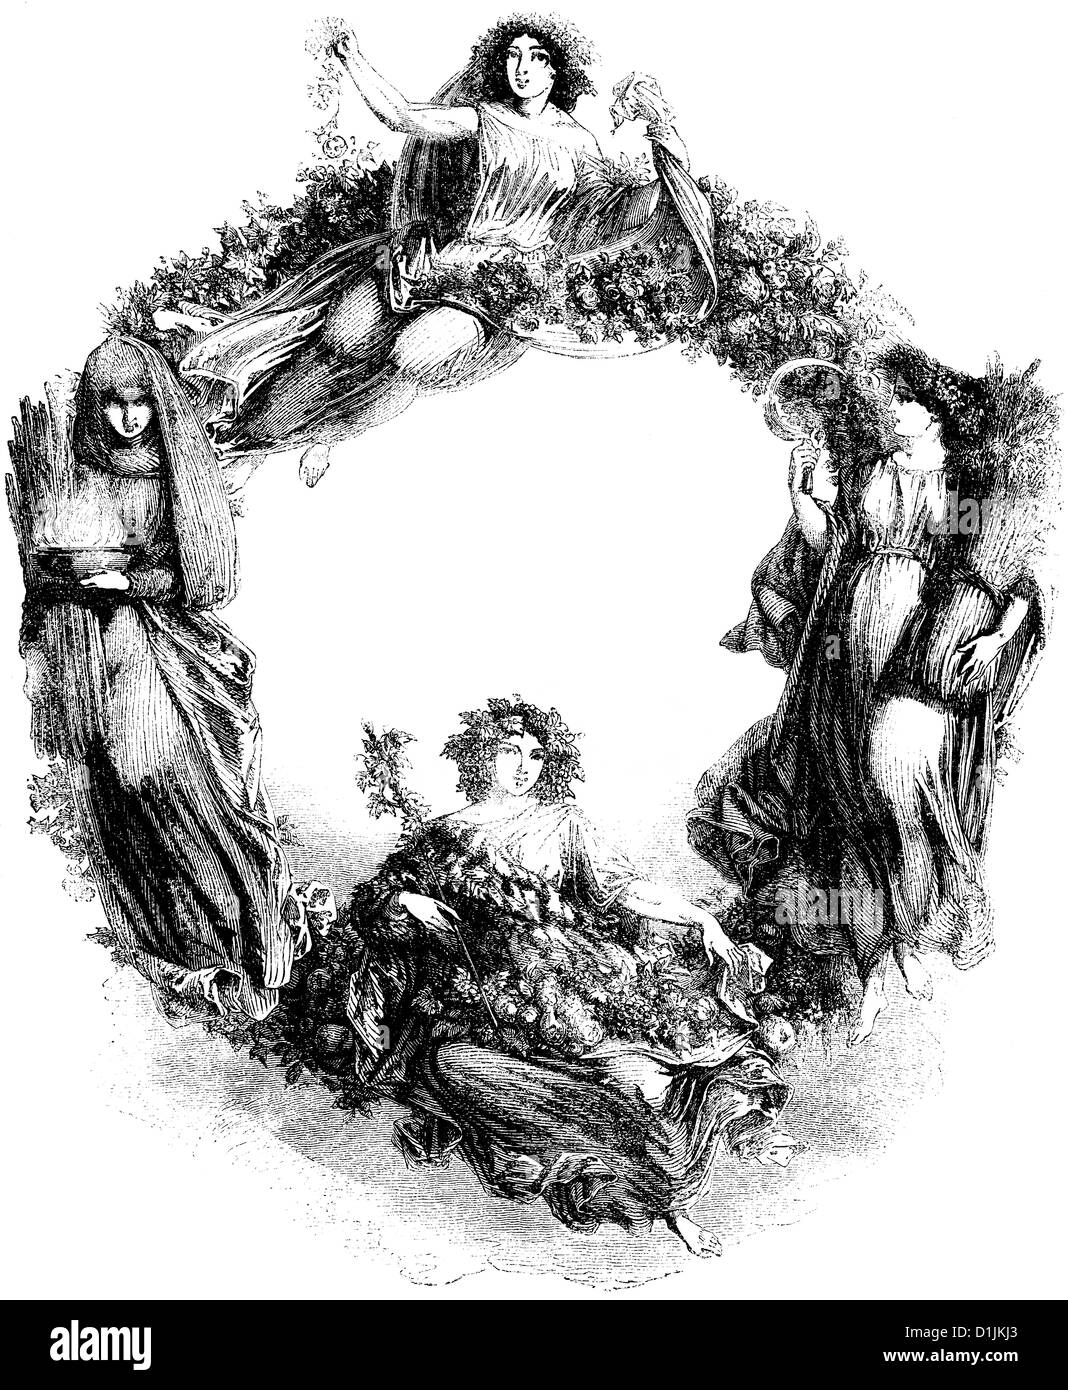 framing with allegorical images of the seasons, women or goddesses, around 1860 - Stock Image